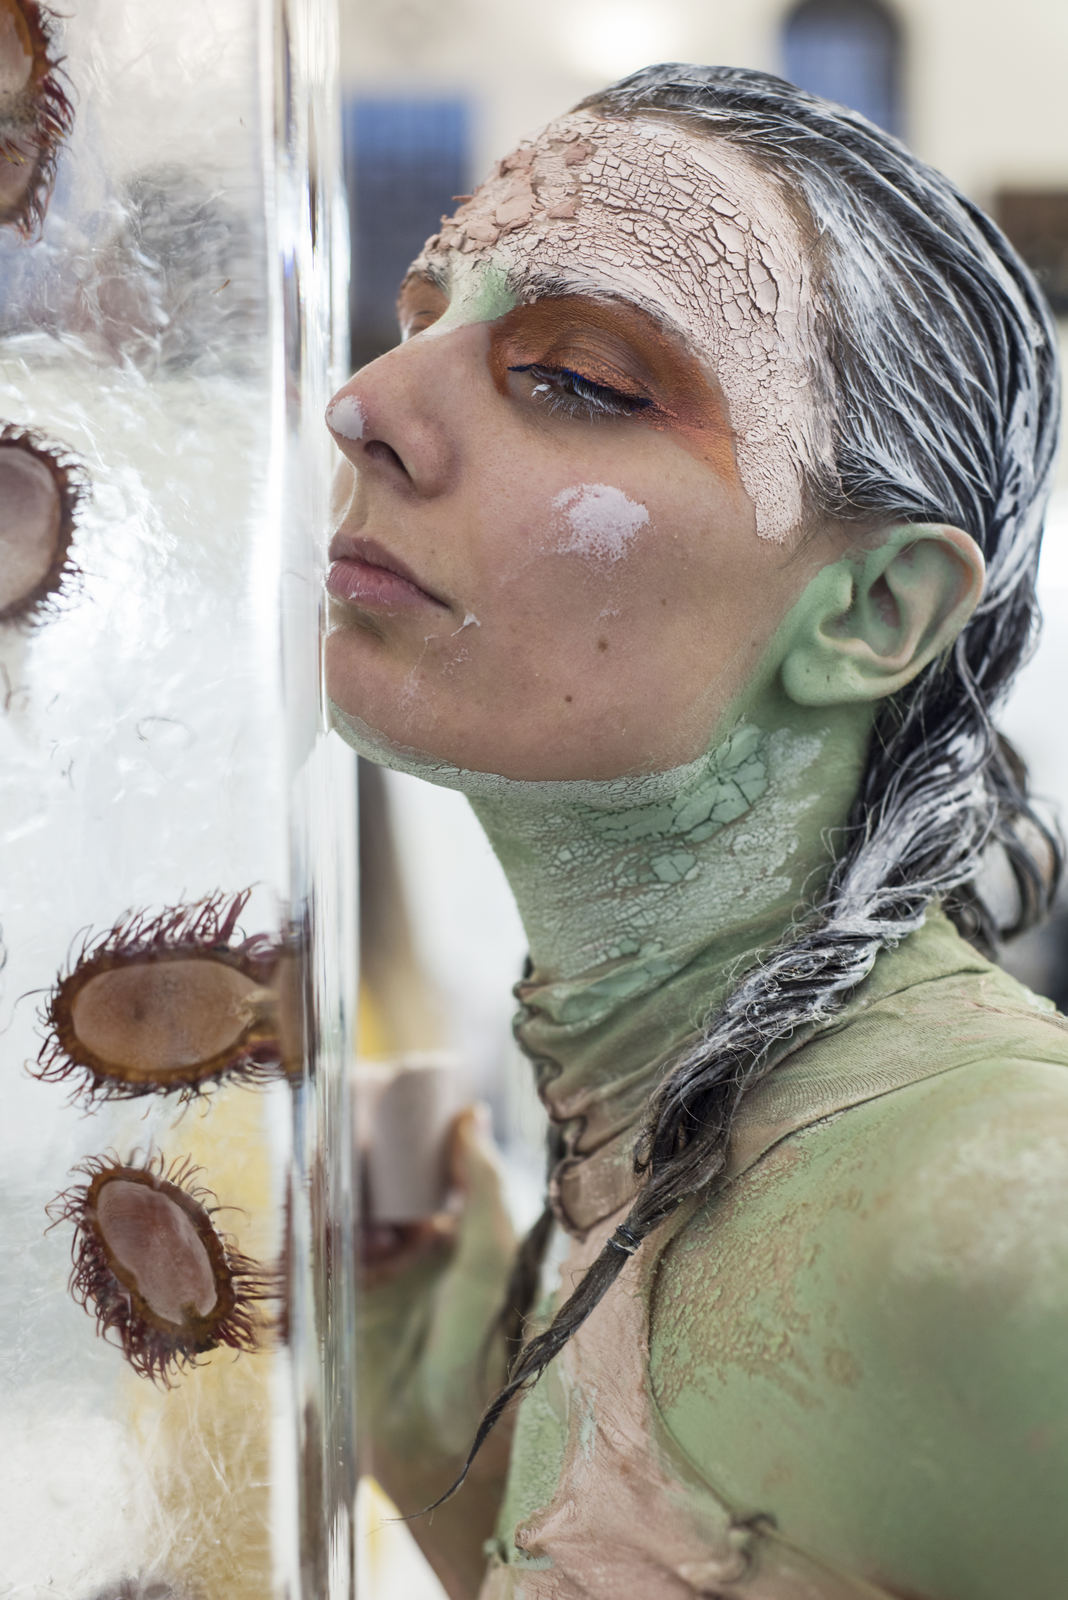 Donna Huanca - Scar Cymbals - performance 07.10.16 - Image Thierry Bal4